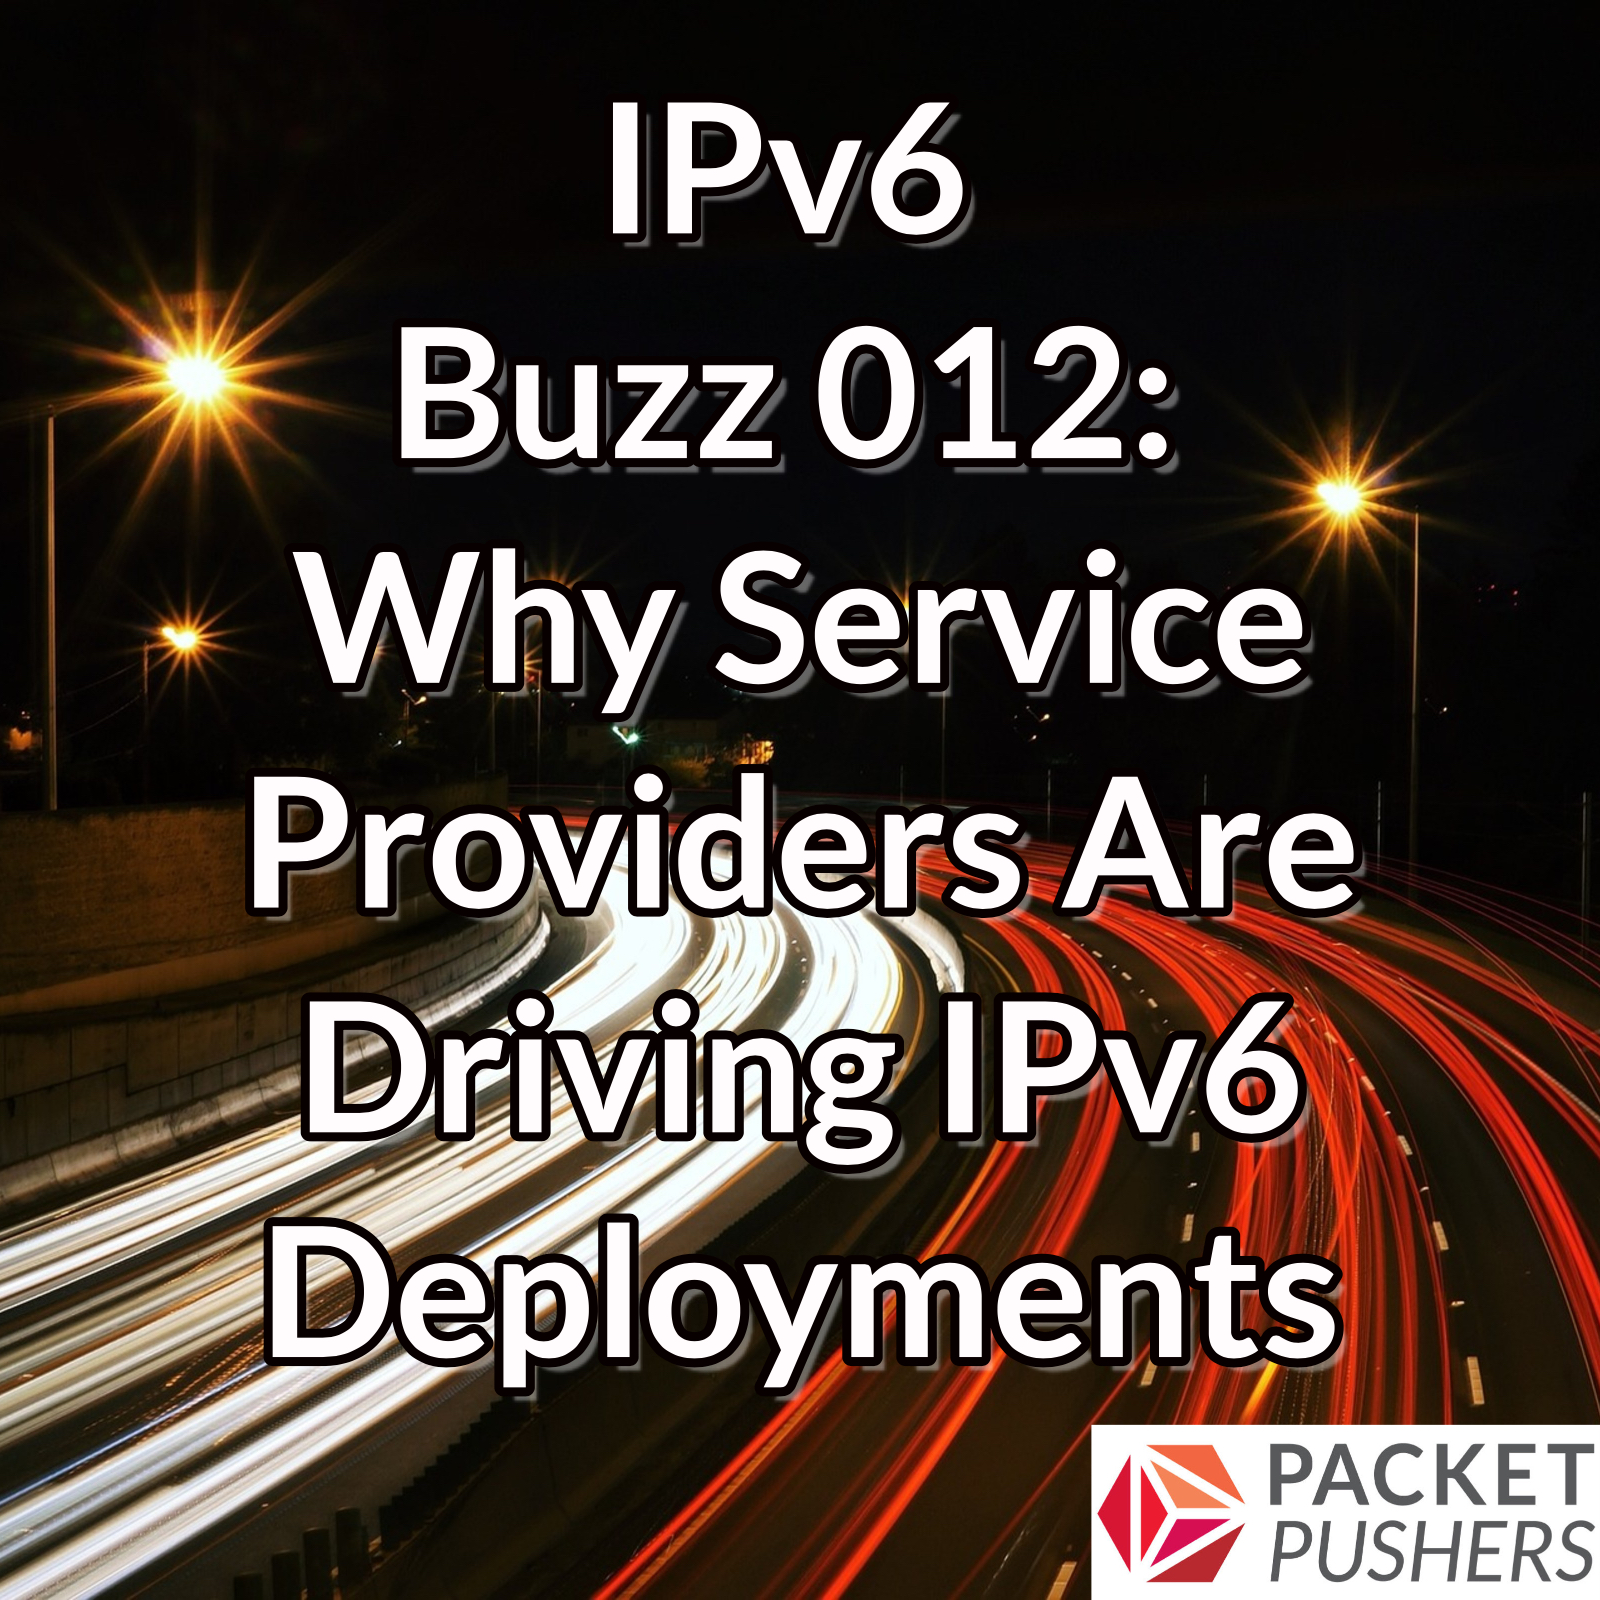 Why service providers are driving IPv6 deployments